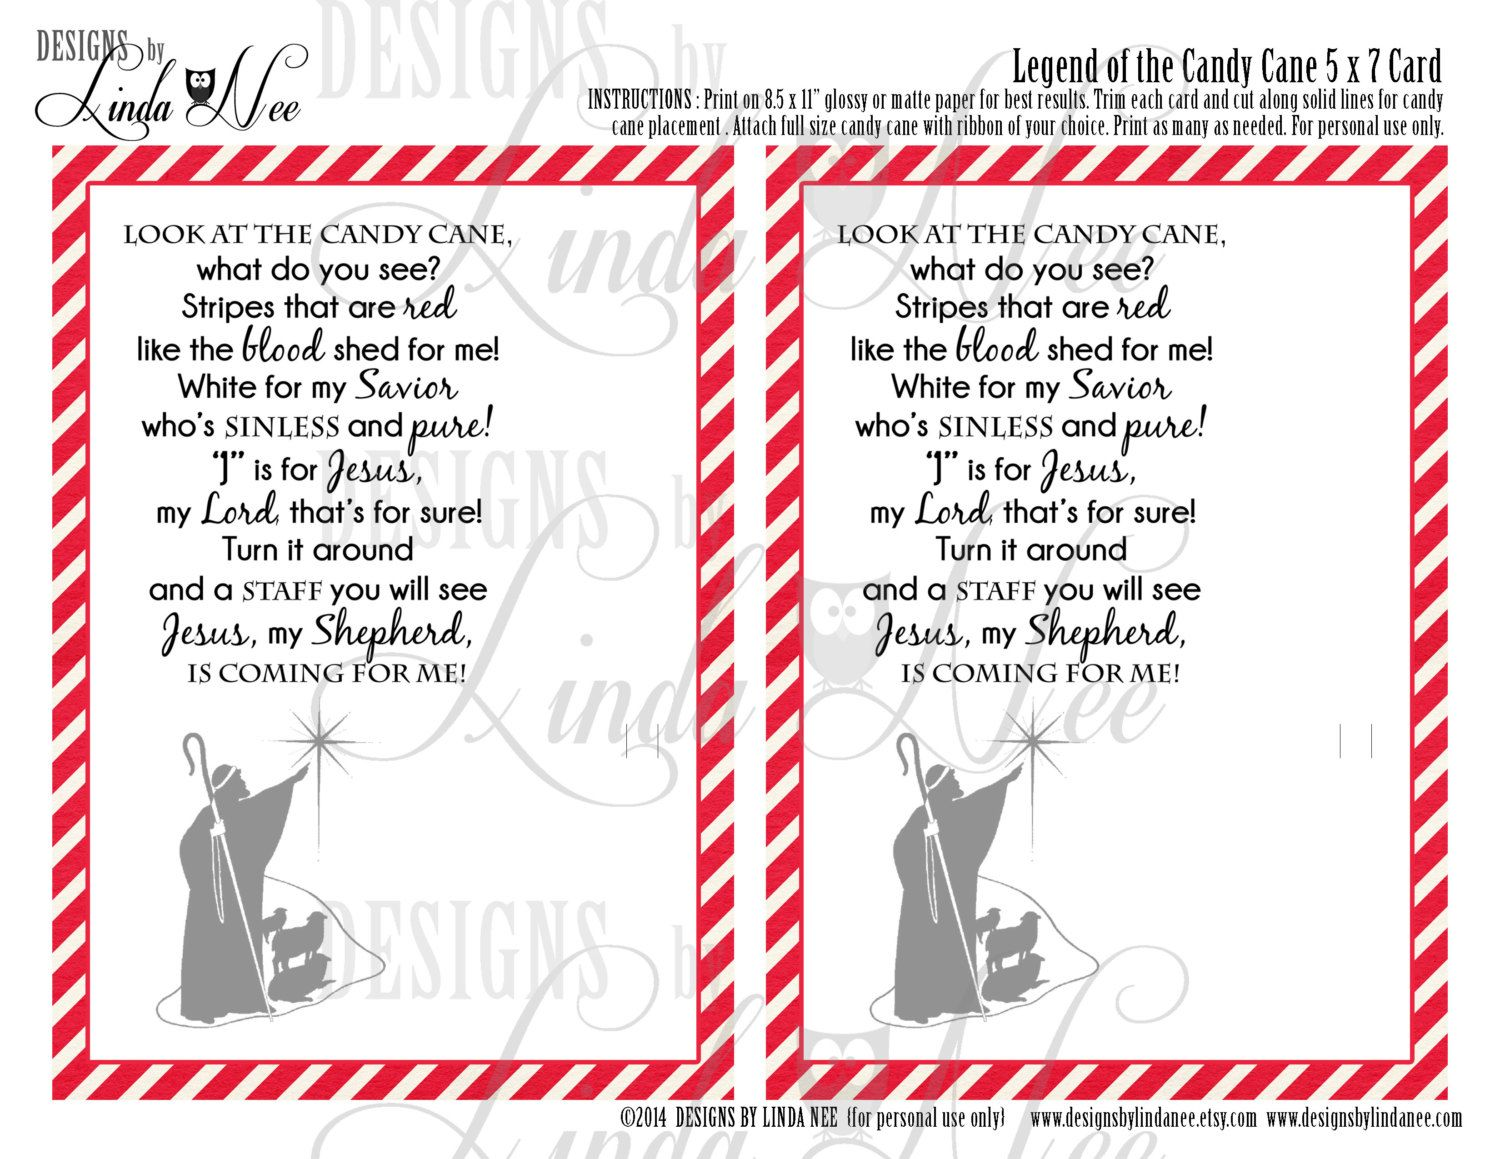 items similar to legend of the candy cane card for witnessing at christmas jesus is the reason for the season printable party packages christian on - Candy Cane Printables